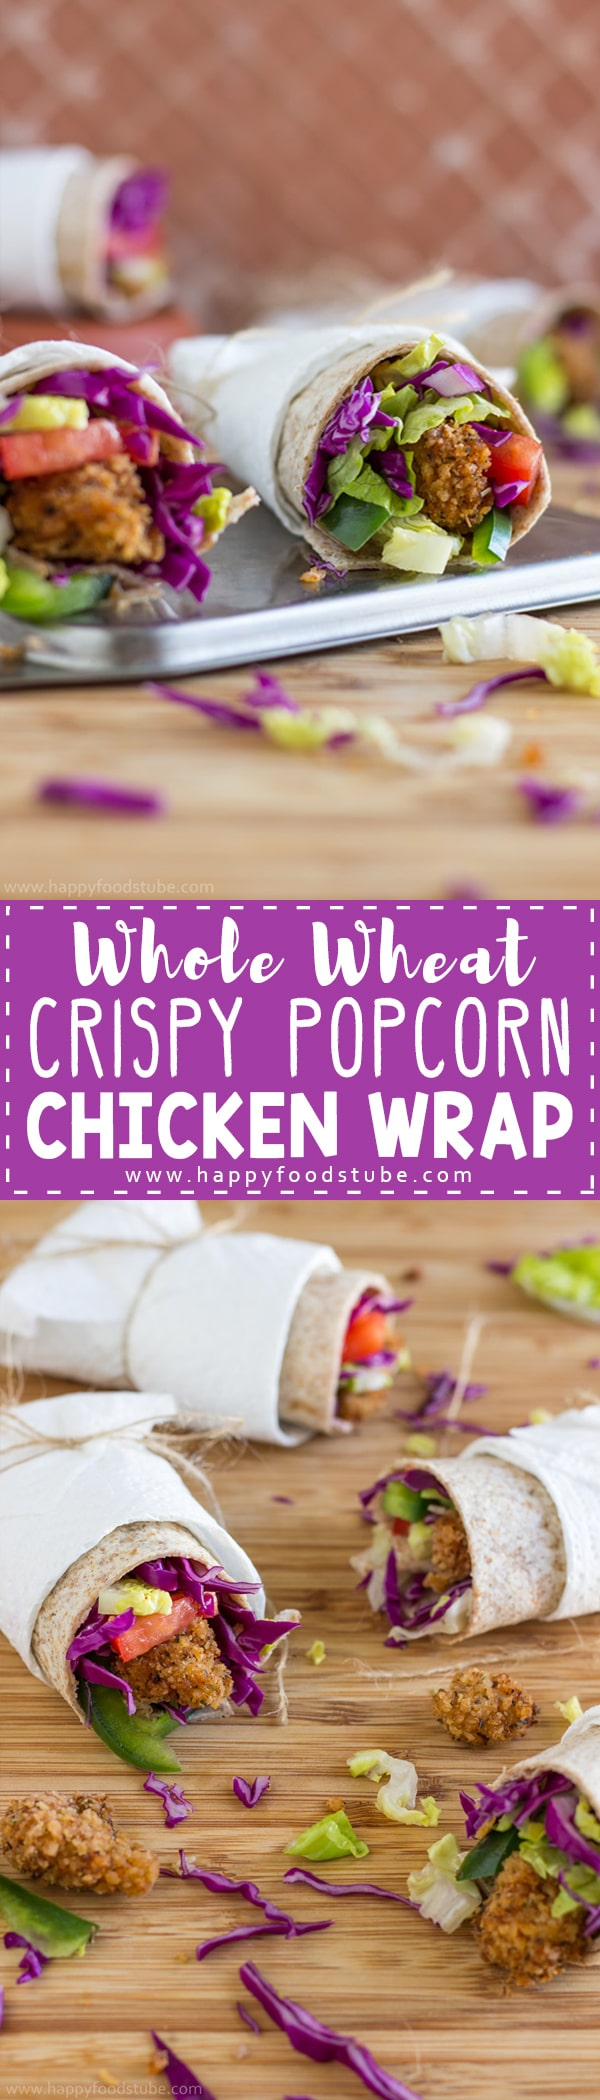 Whole Wheat Crispy Popcorn Chicken Wrap. Homemade popcorn chicken, lots of vegetables all wrapped in whole wheat tortilla. Great snack or light lunch